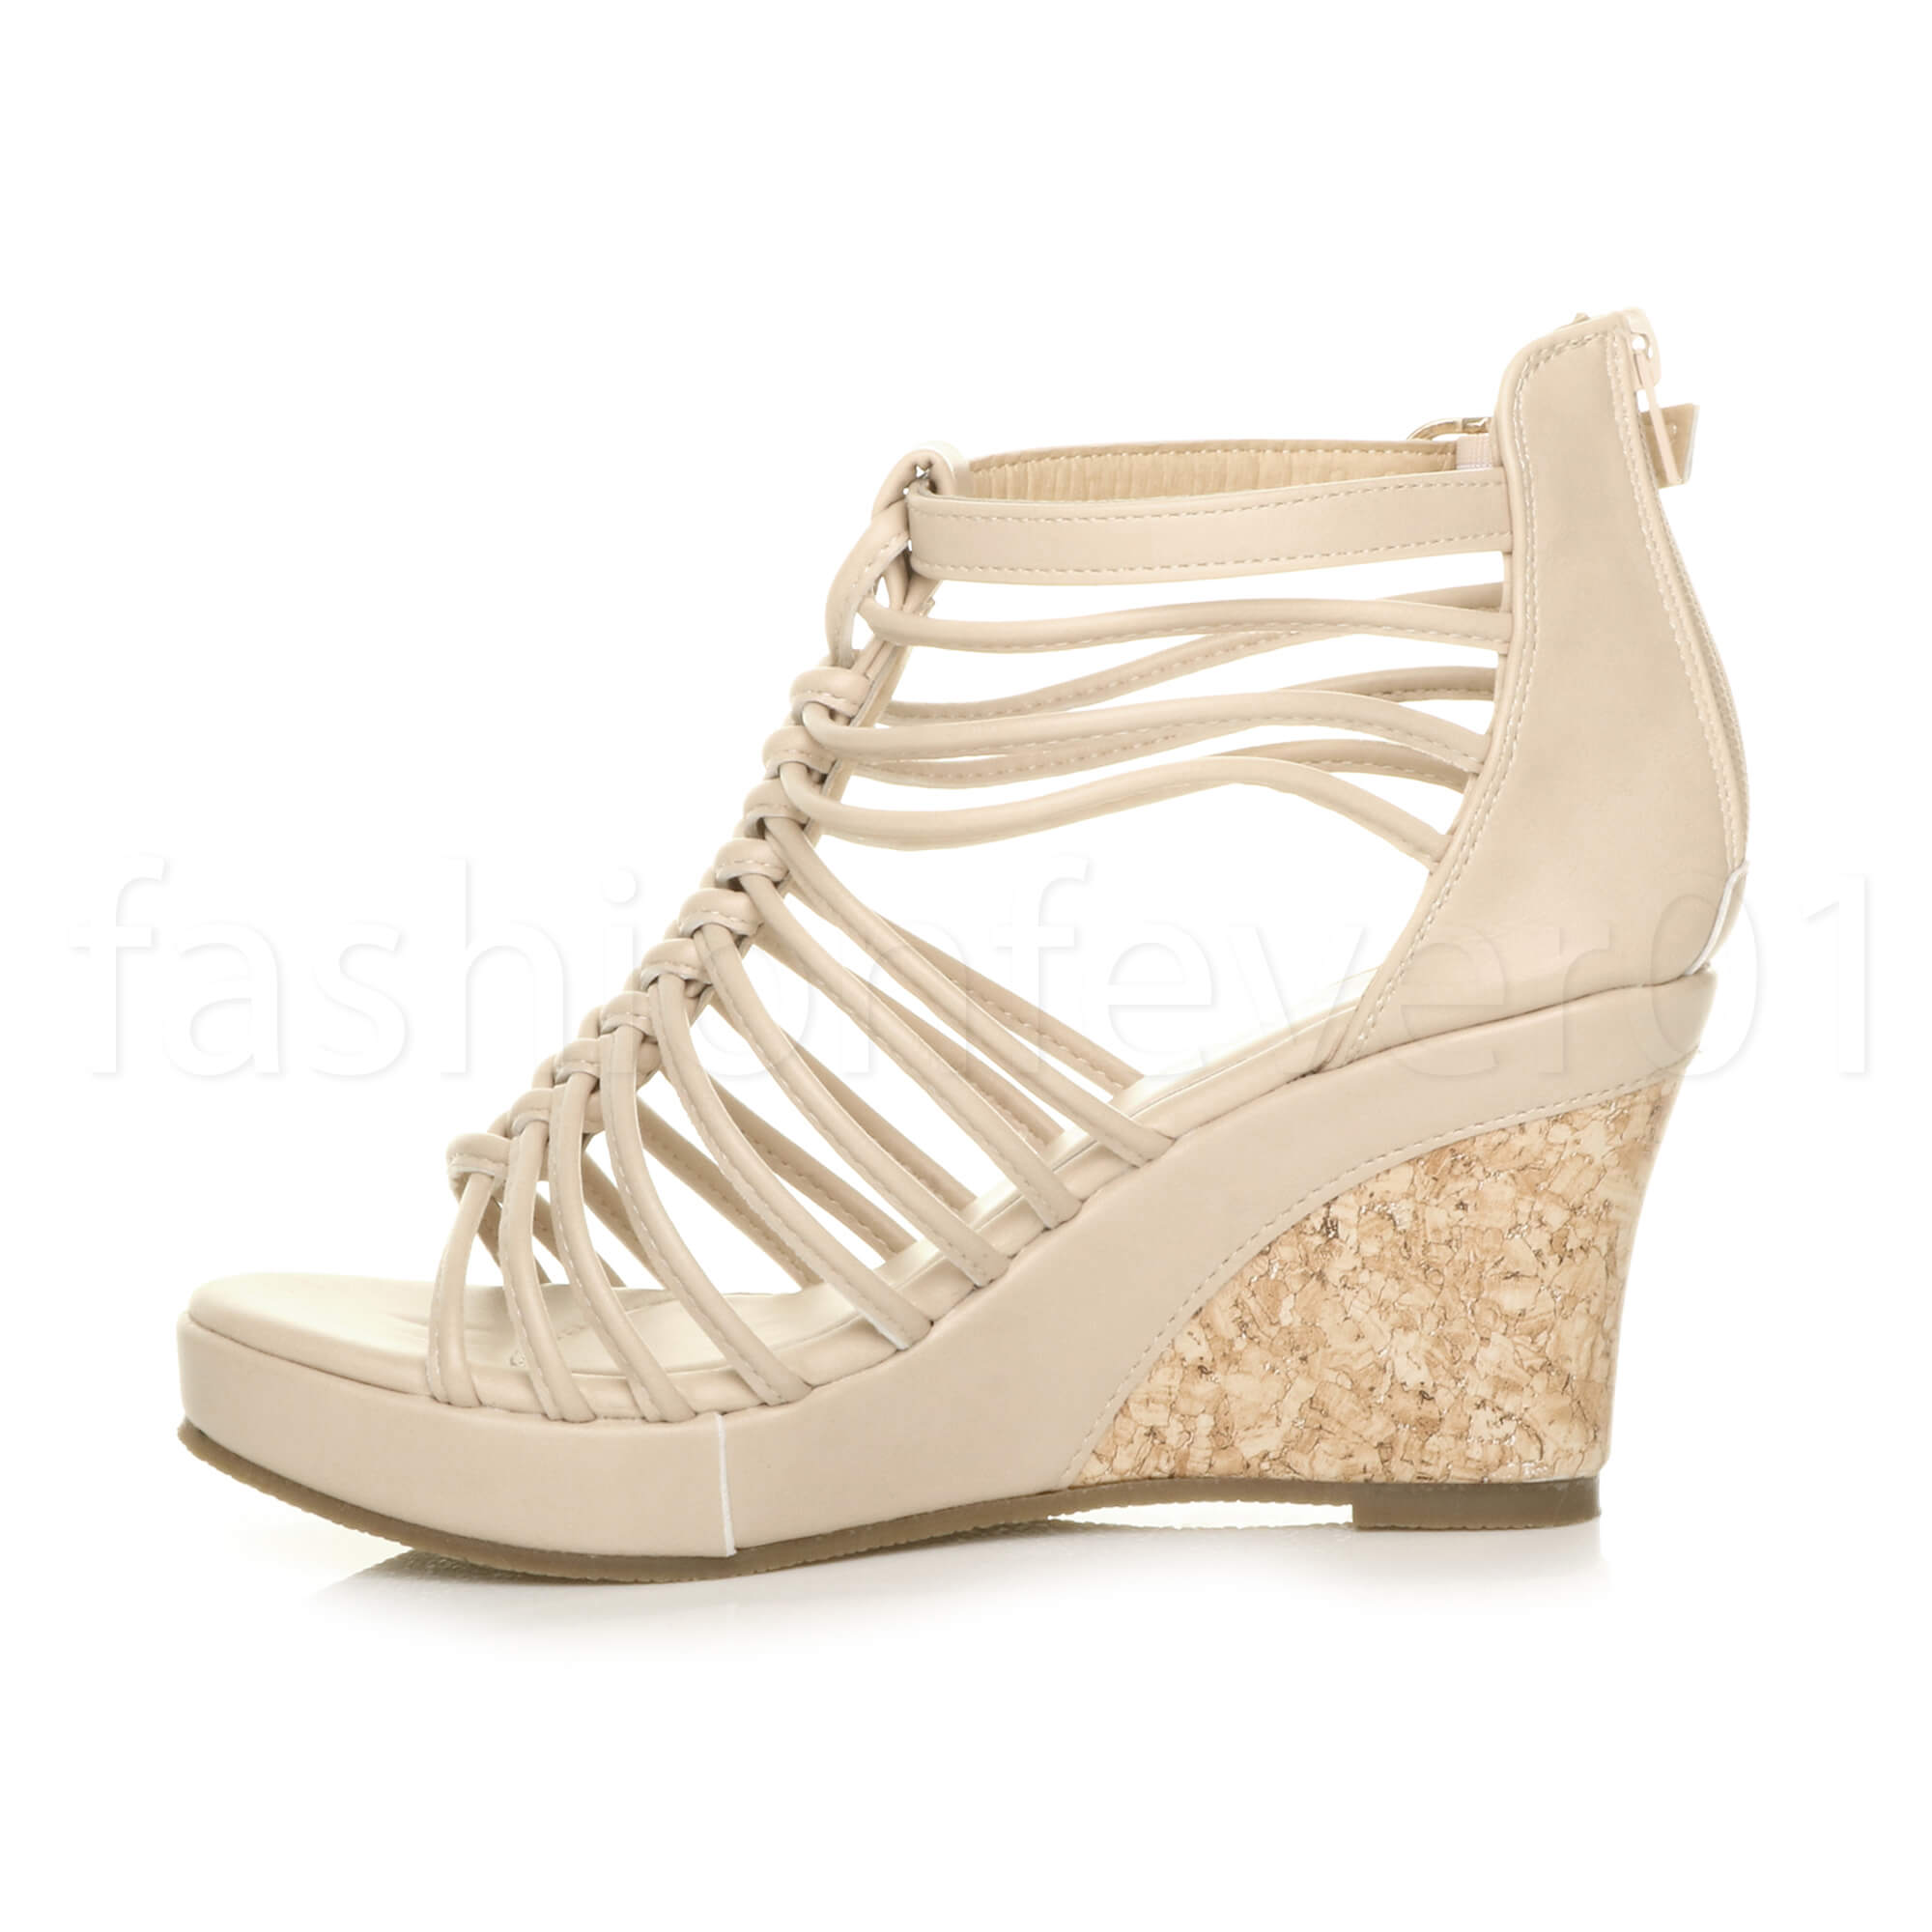 Fantastic Details About WOMENS LADIES SILVER GLADIATOR WEDGE SANDALS SIZES 38